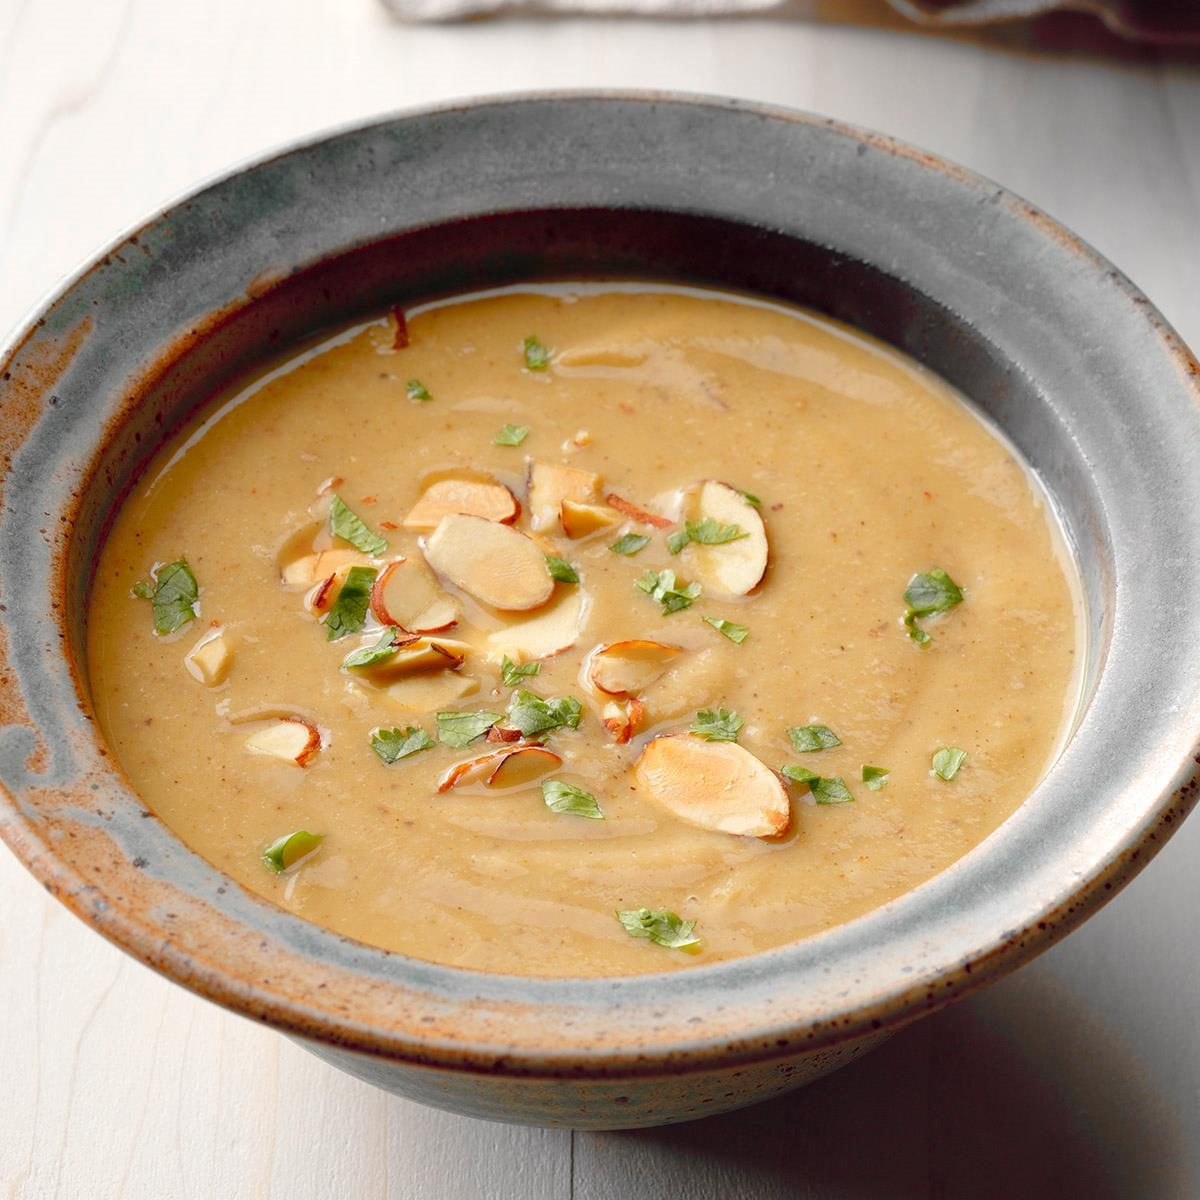 Moroccan Cauliflower and Almond Soup